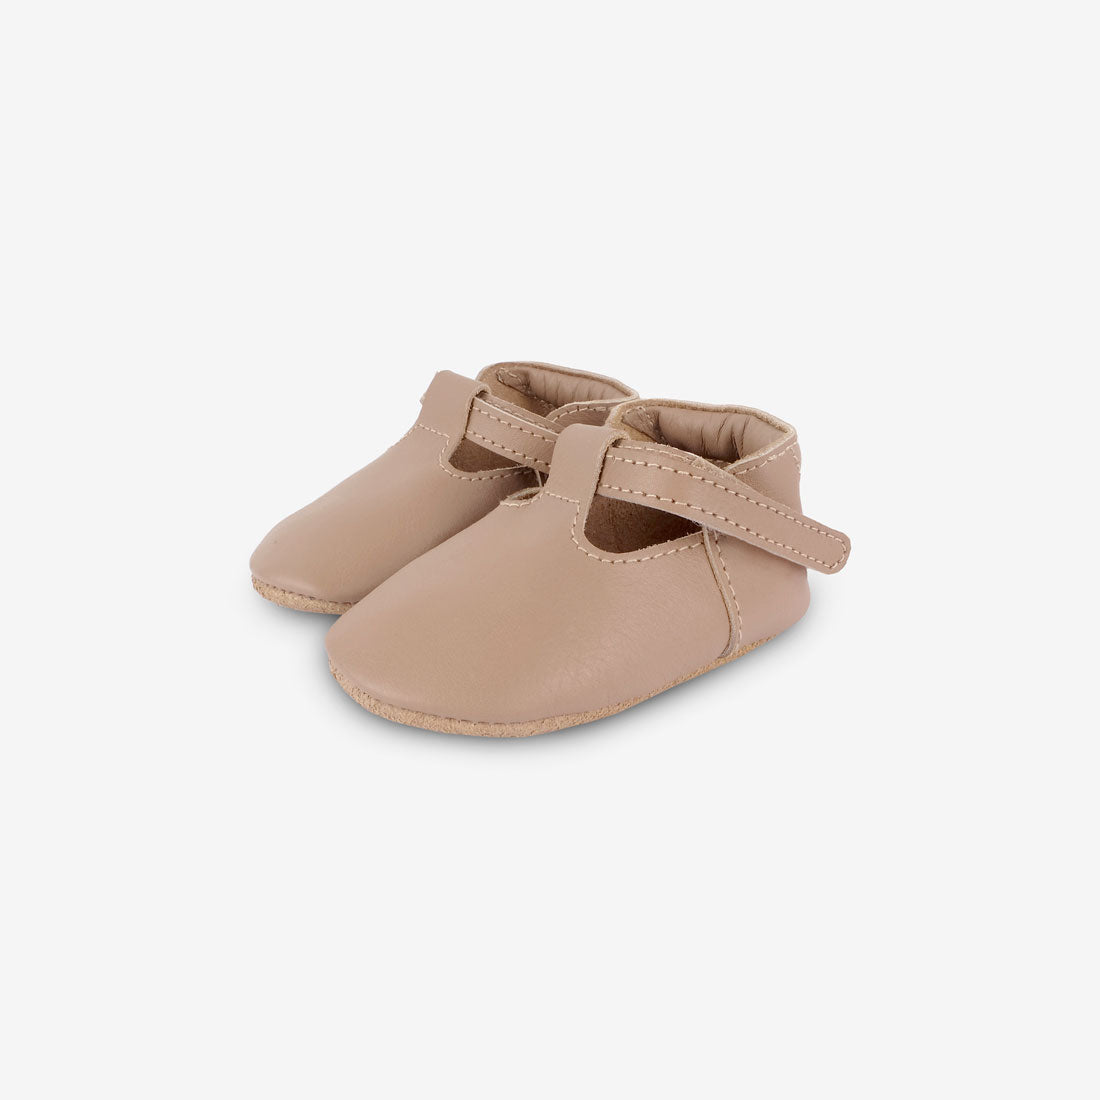 Elia Leather Baby Shoes - Praline